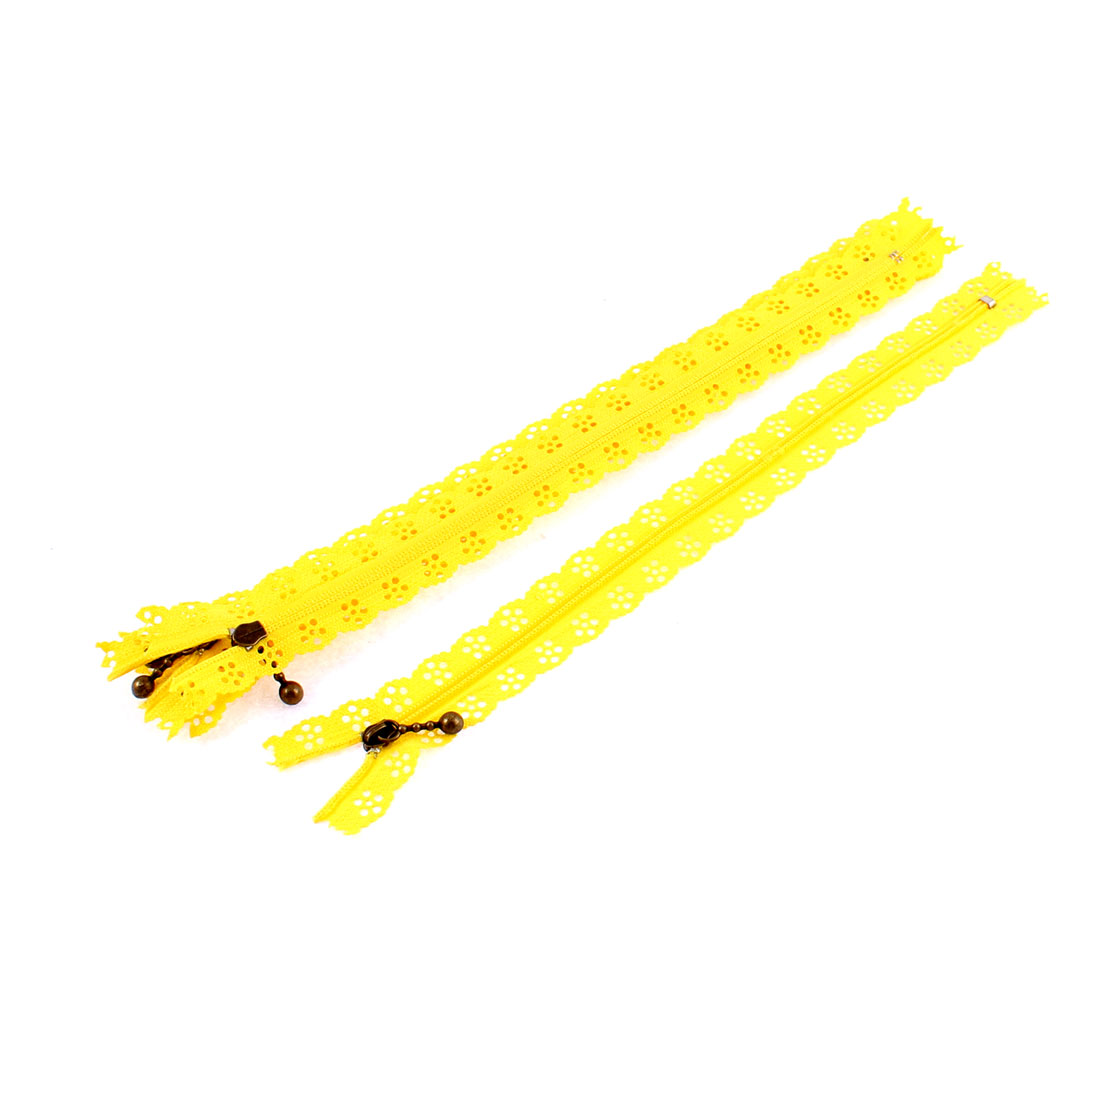 Yellow Nylon Flower Floral Lace Closed End Zip Zippers 5 Pcs